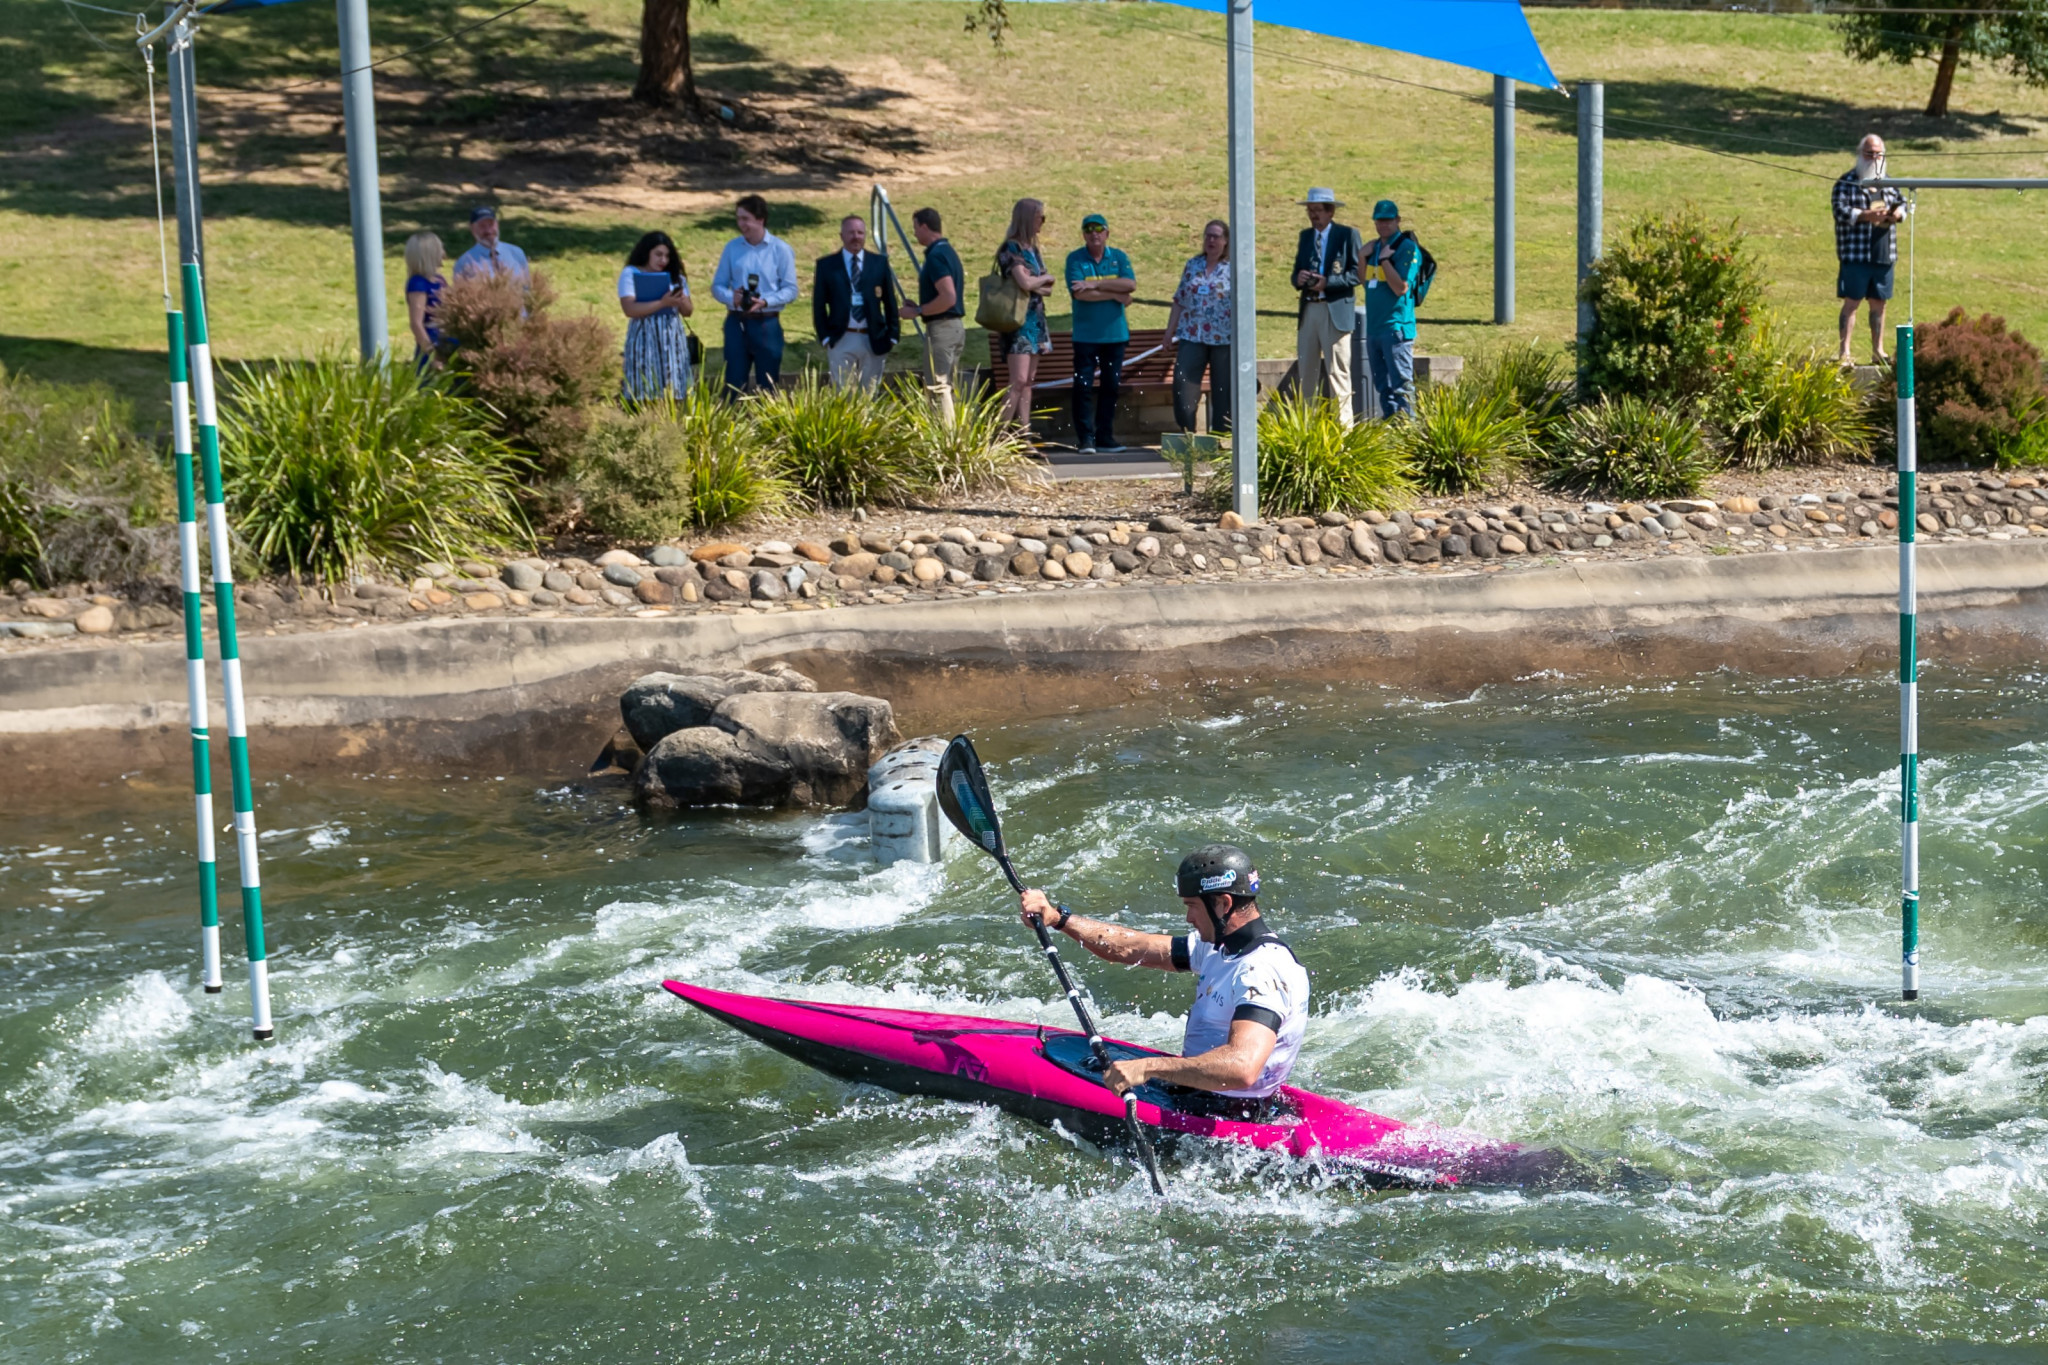 Lucien Delfour used the event as a training session ©Paddle Australia